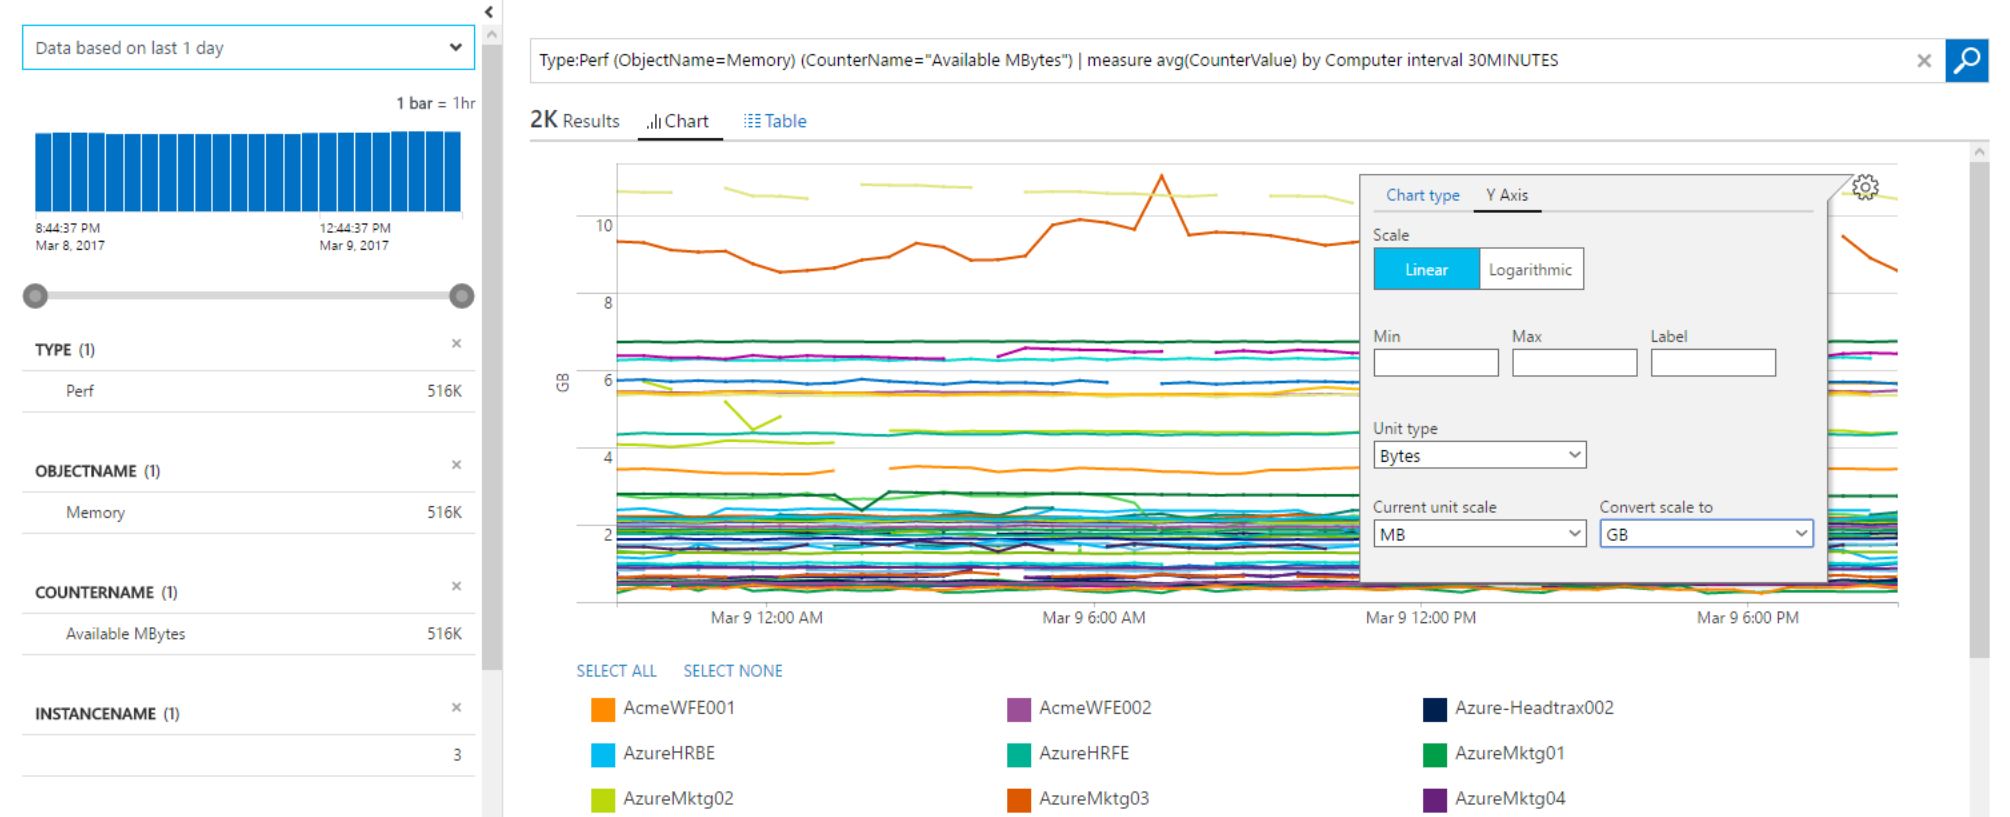 Operations management suite oms searching and presenting data configure y axis chart settings nvjuhfo Image collections